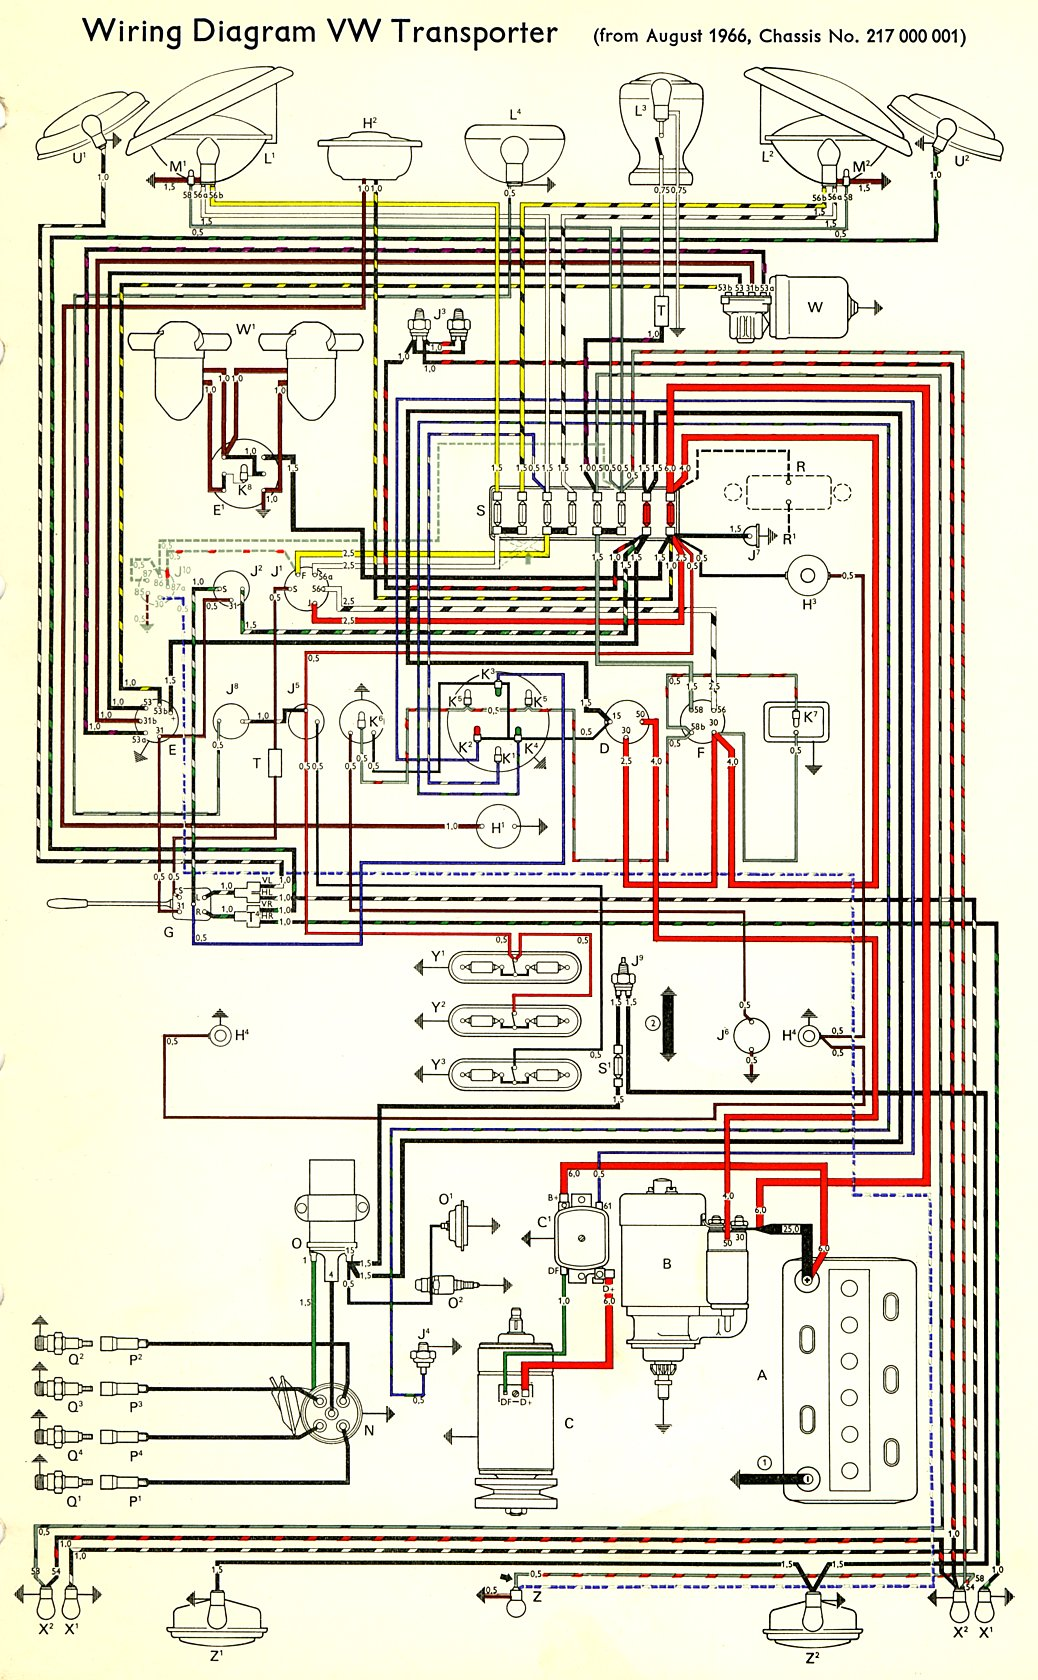 bus_67 1967 bus wiring diagram thegoldenbug com 1957 vw beetle wiring diagram at bayanpartner.co